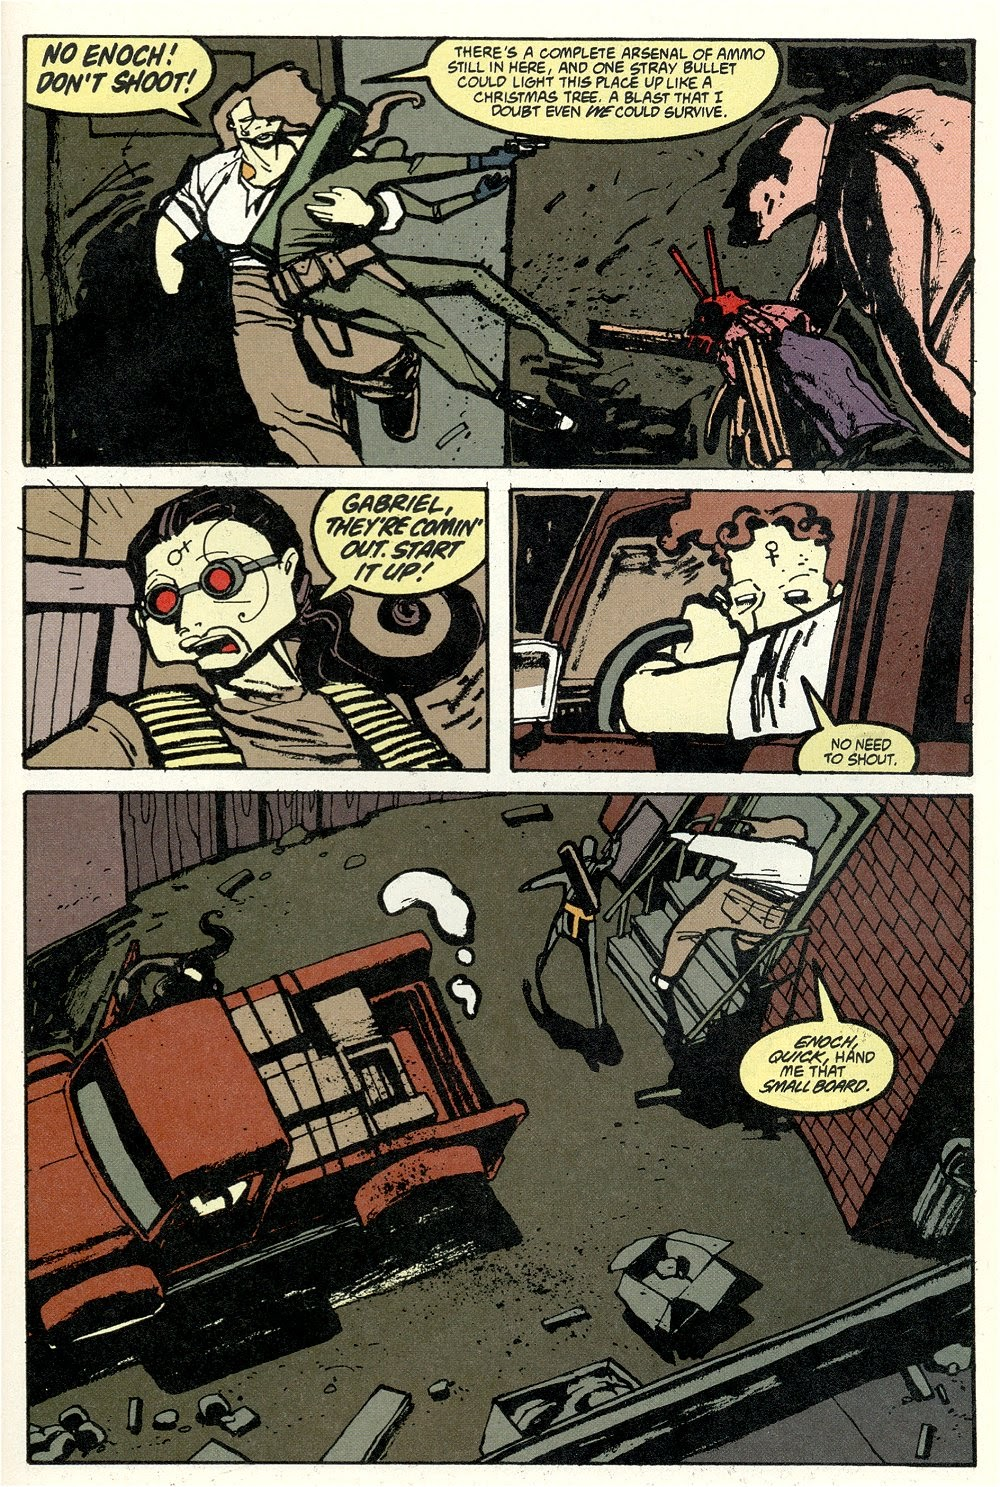 Read online Ted McKeever's Metropol comic -  Issue #11 - 17